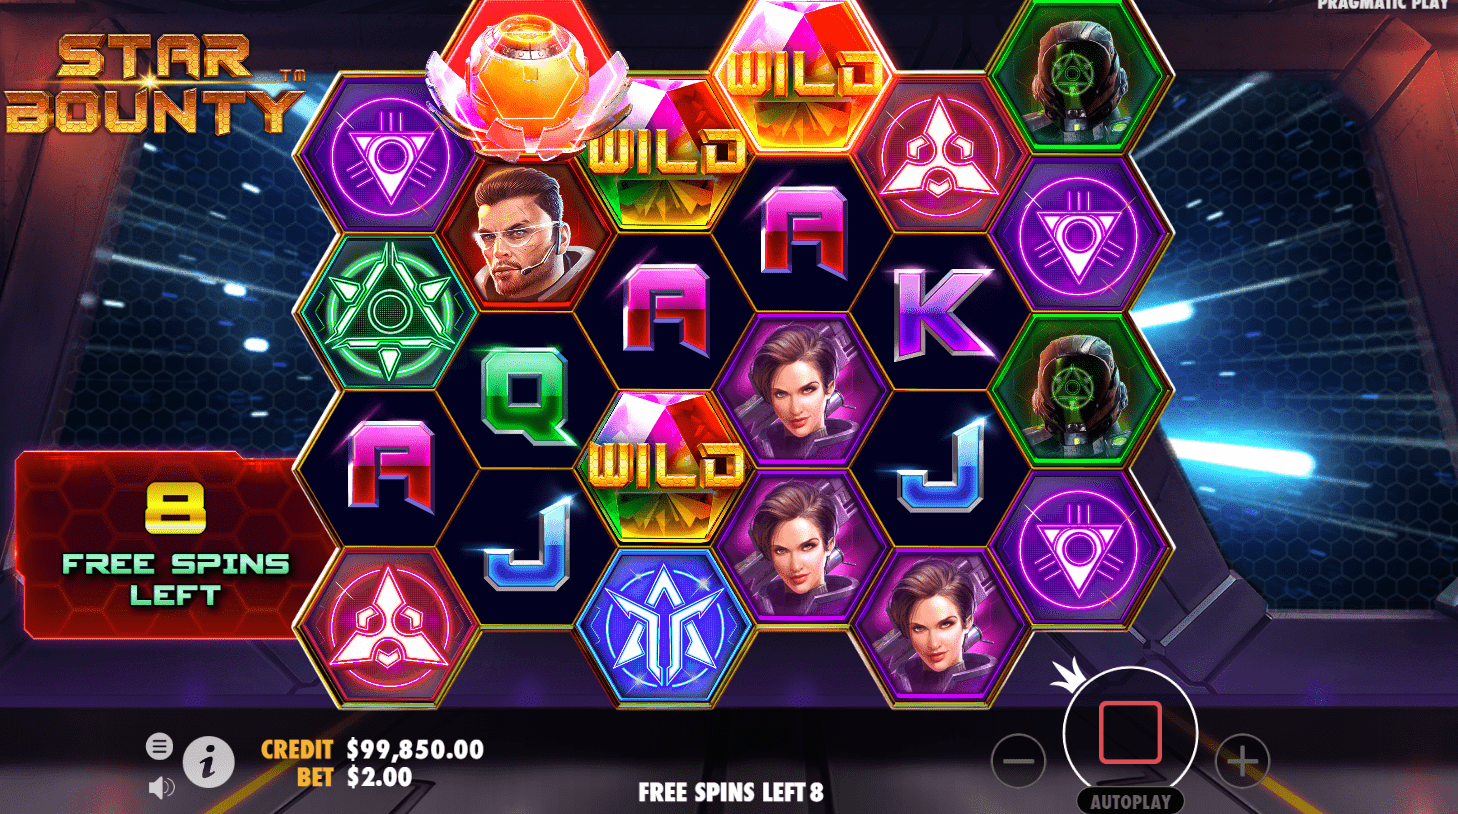 Star bounty - slot game - Missile Wild